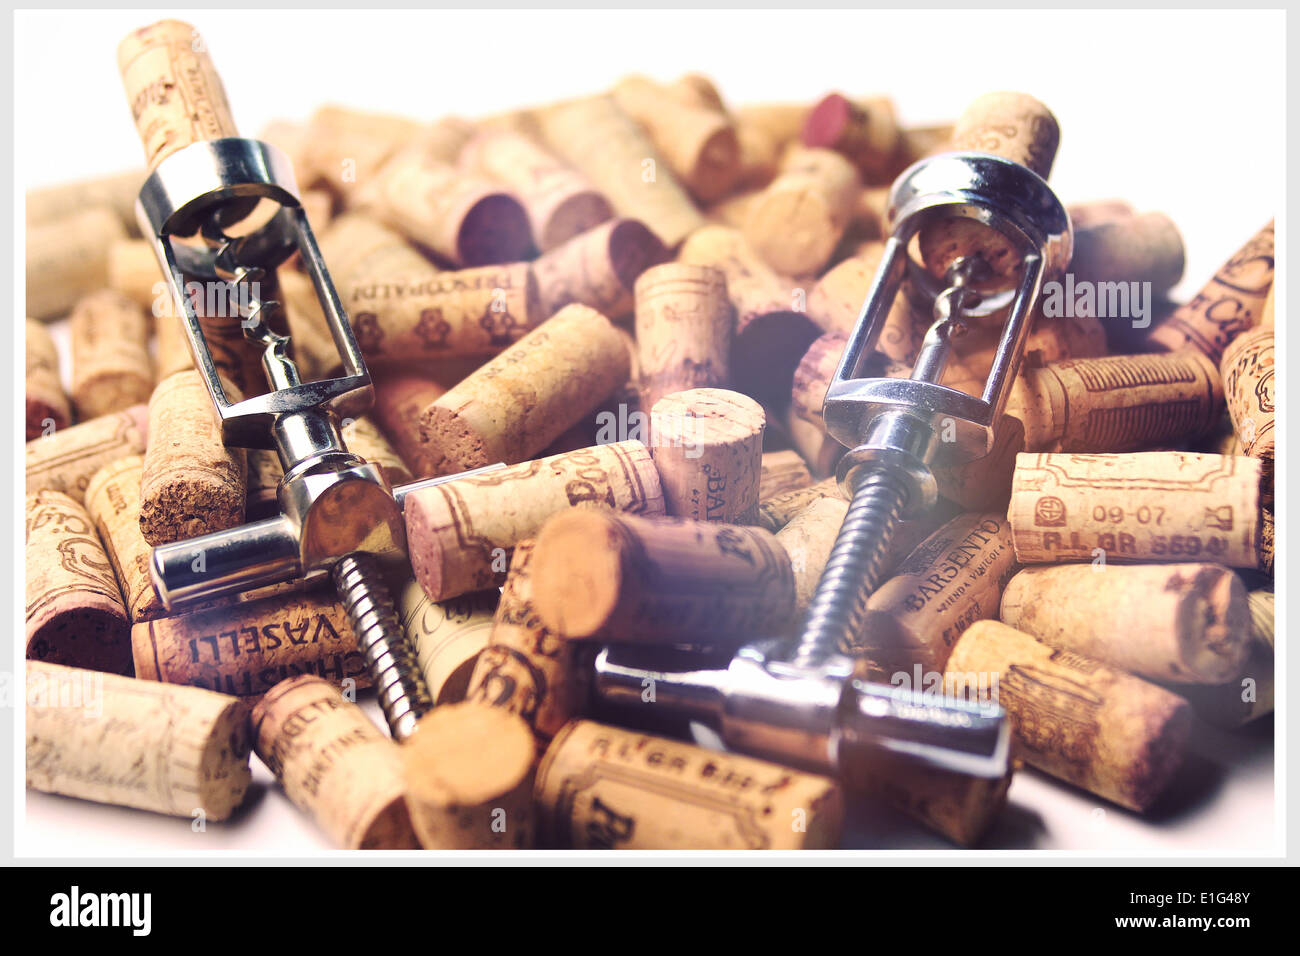 Corks of different Italian wines and corkscrews - Stock Image